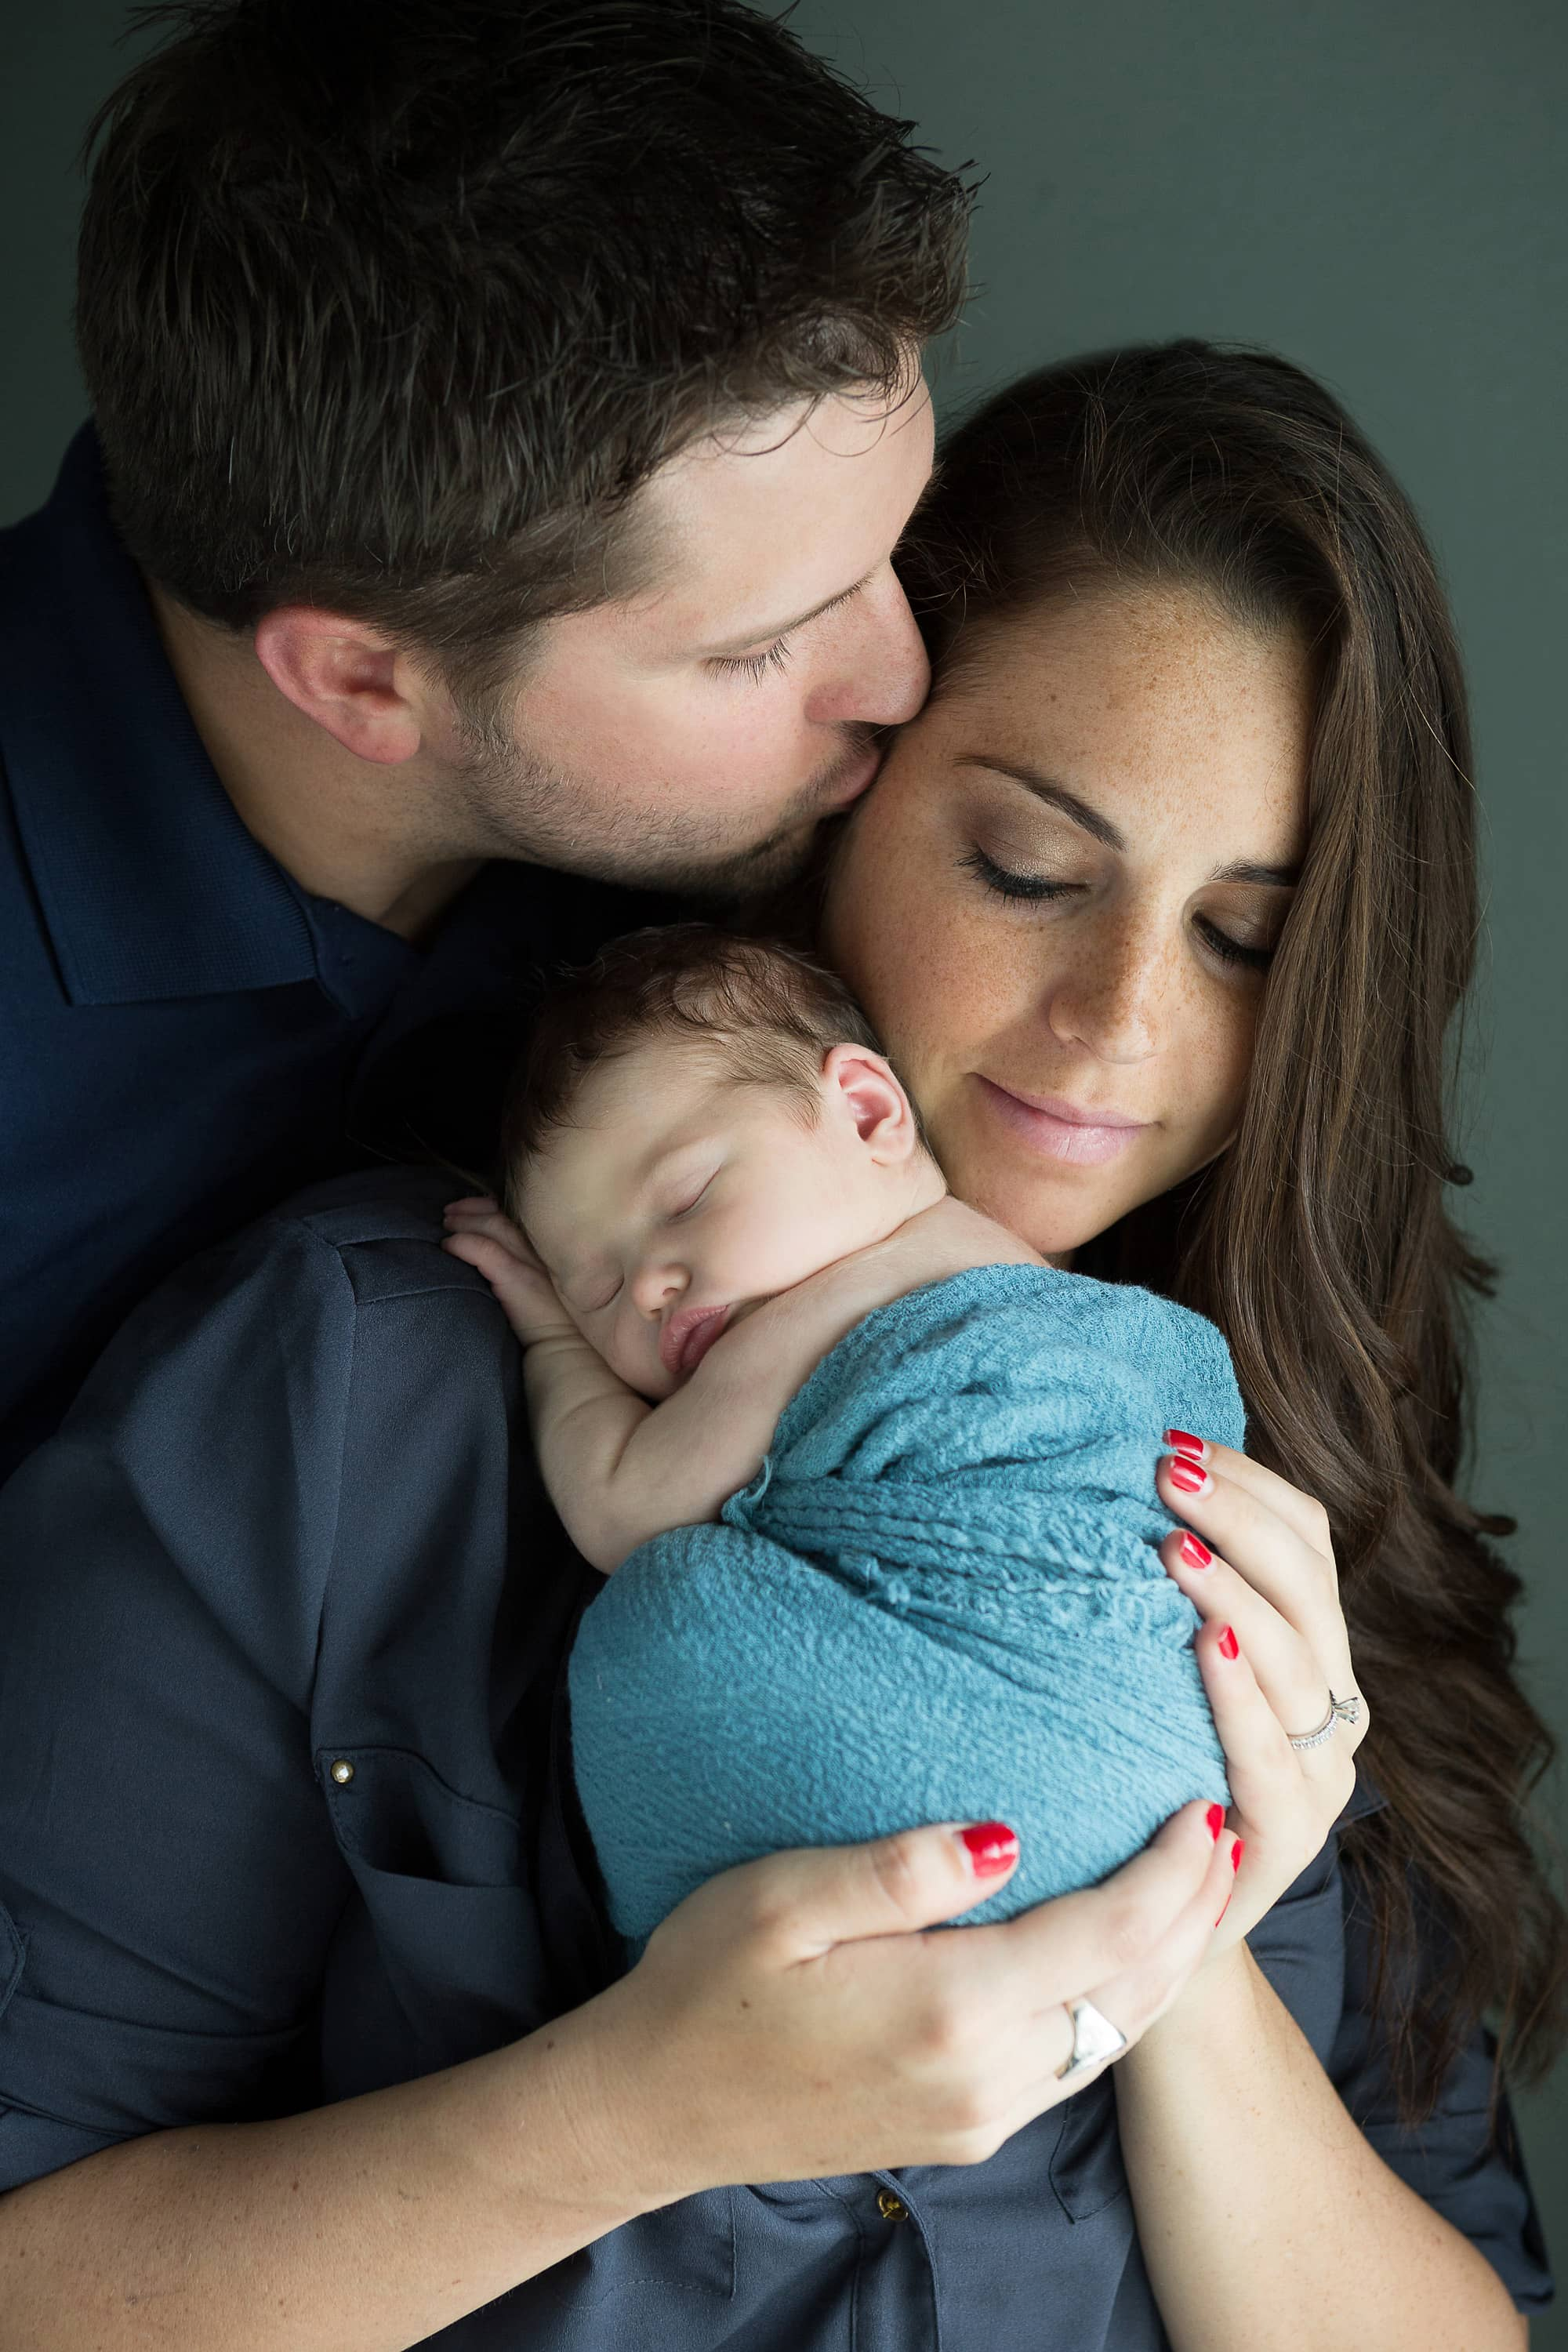 dad kissing mom holding newborn baby girl at home during photo session